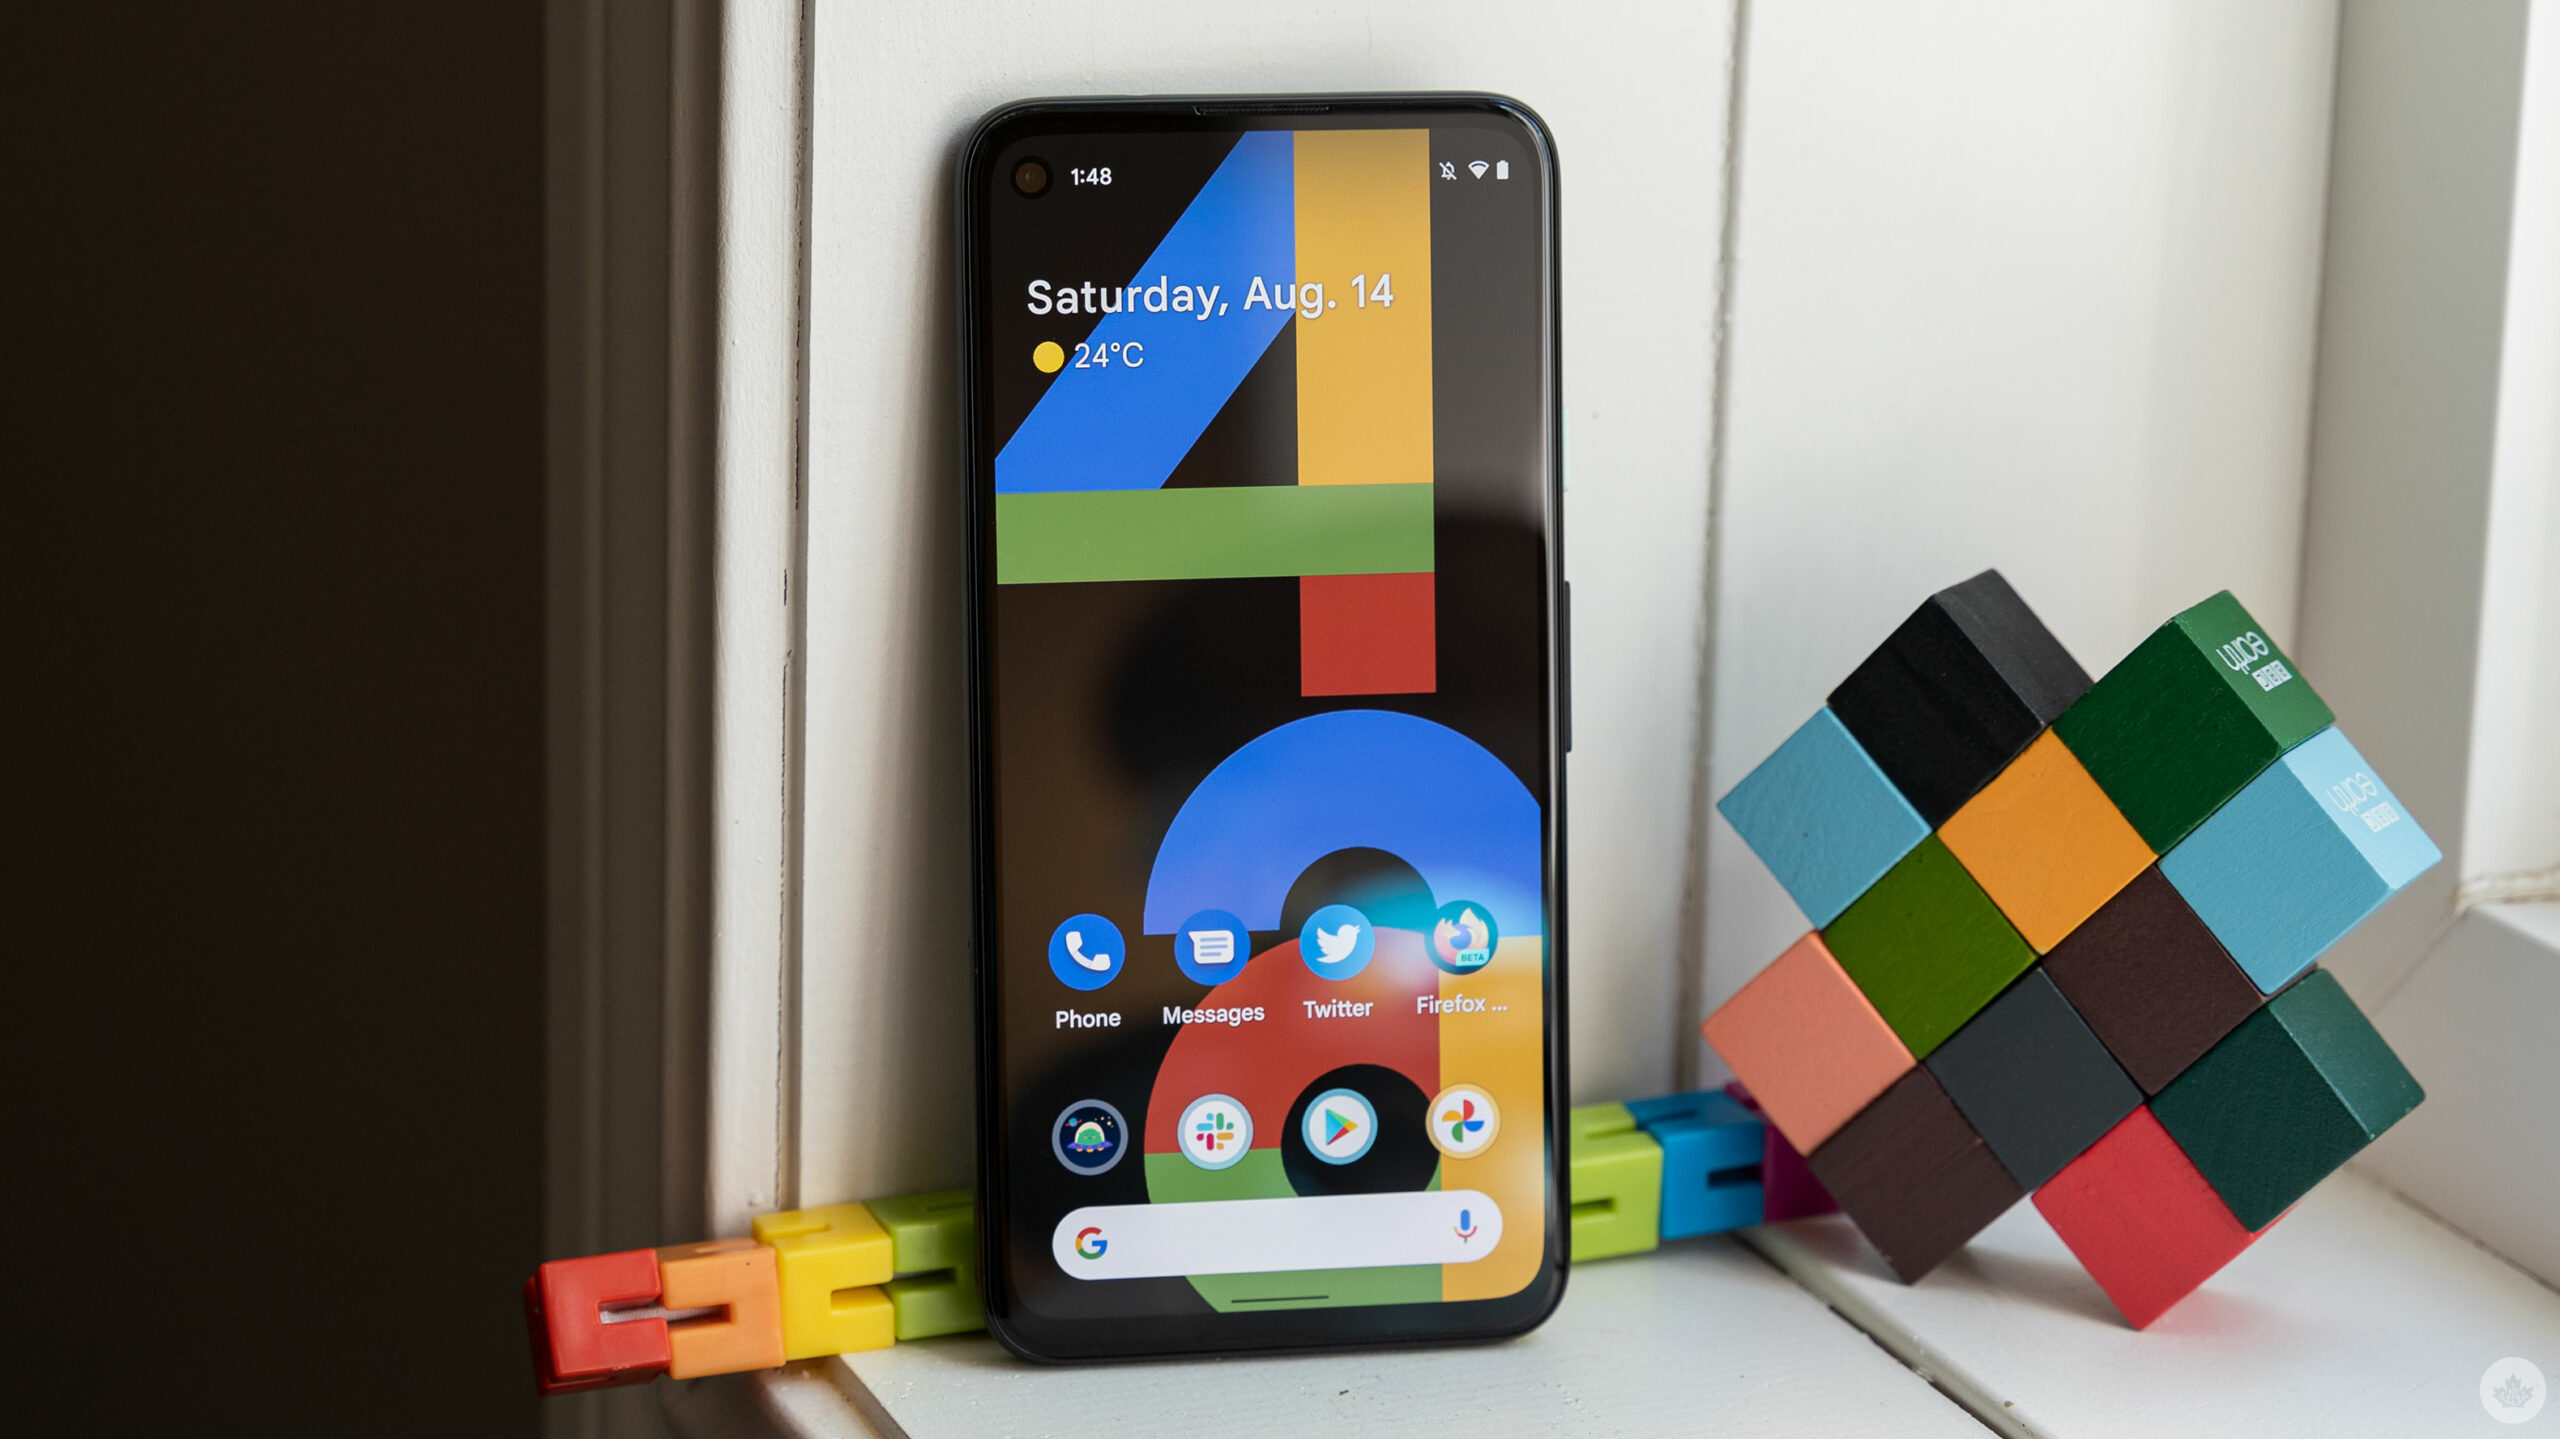 Pixel 4a with promo '4a' wallpaper